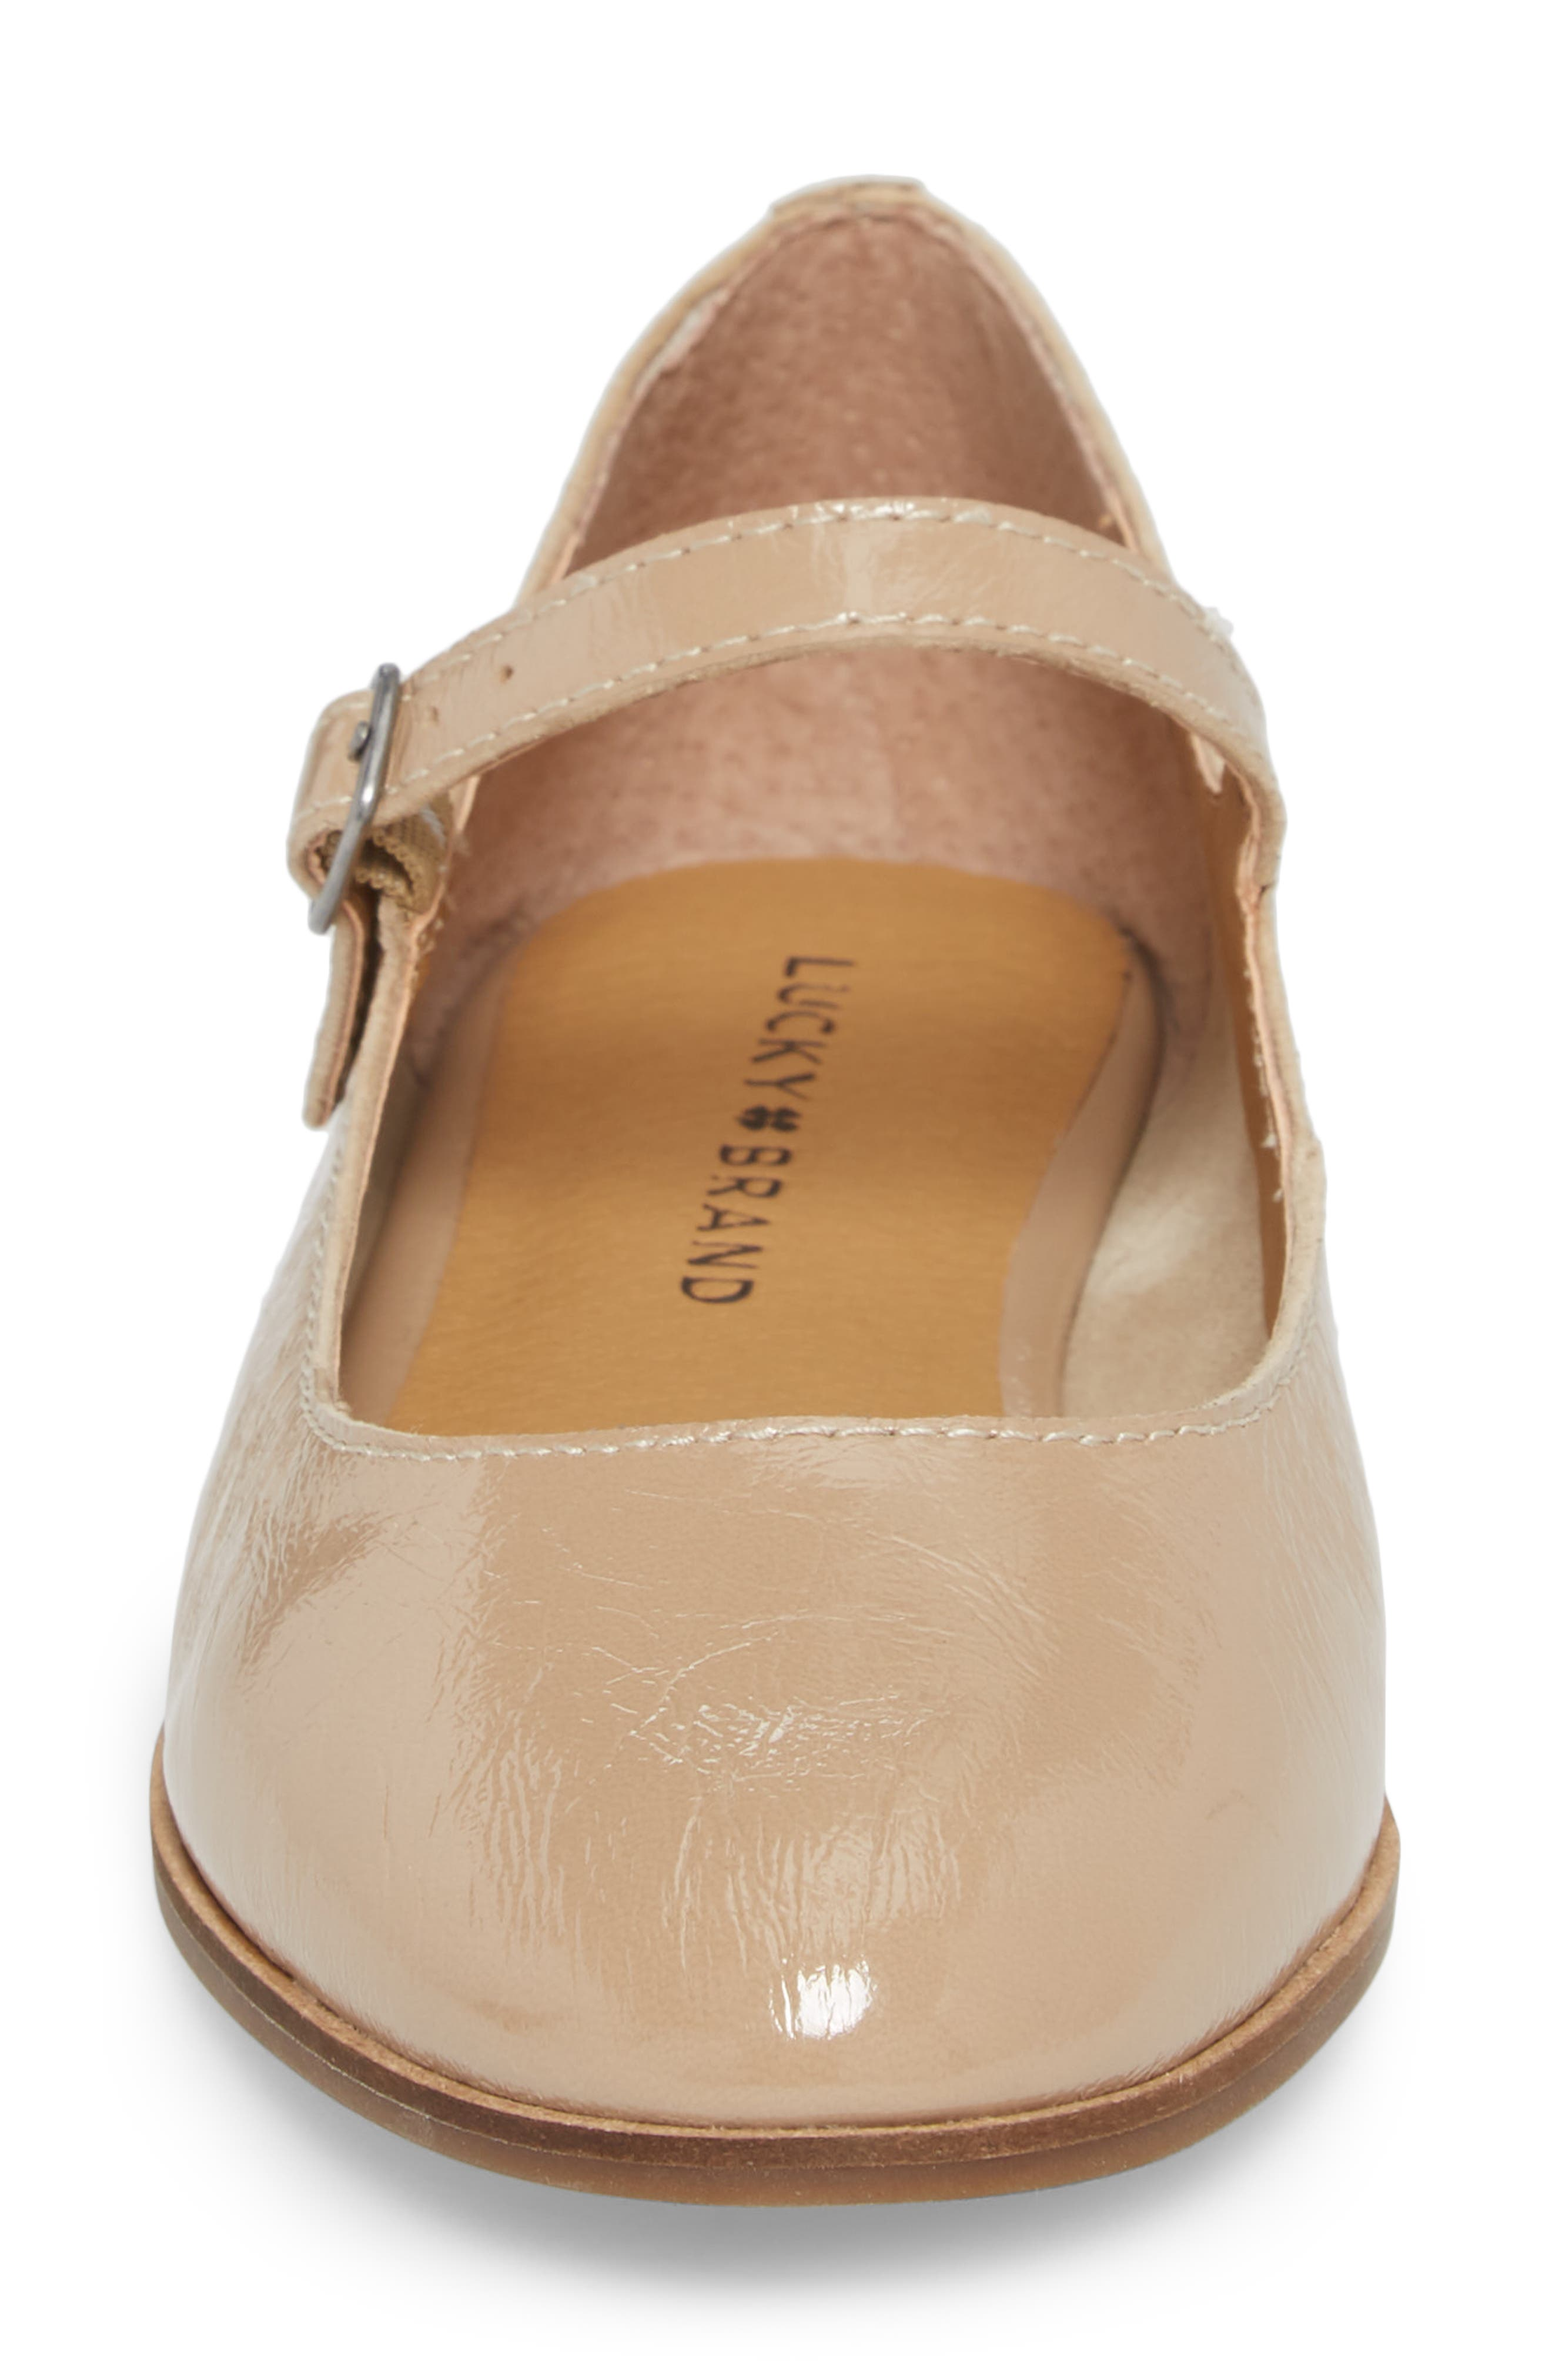 Ceentana Mary Jane Flat,                             Alternate thumbnail 4, color,                             Feather Leather